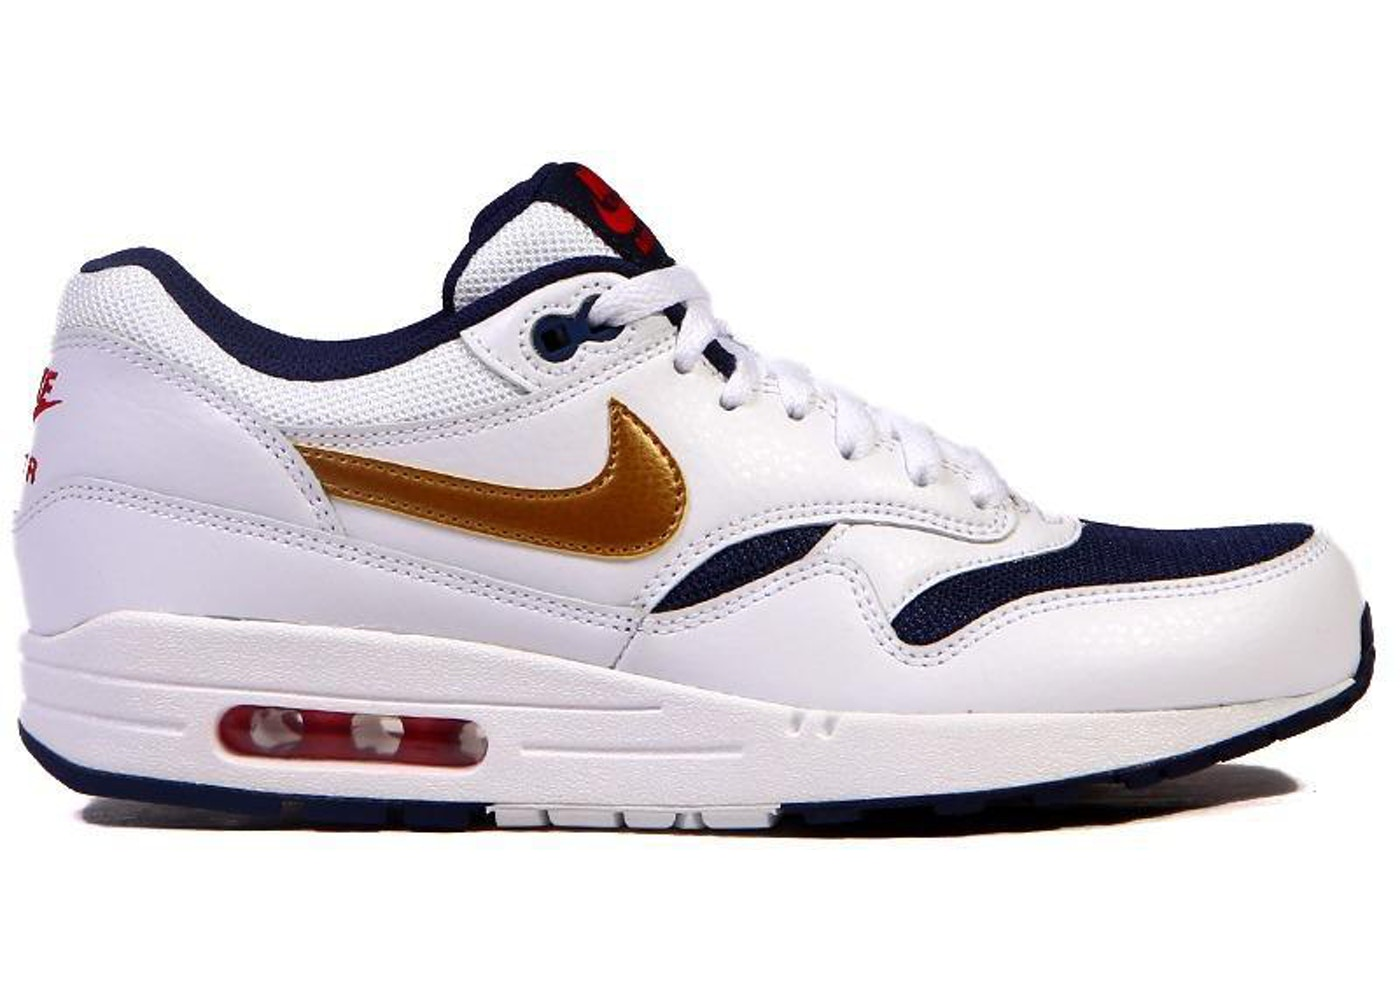 dce7145c Sell. or Ask. Size 9. View All Bids. Air Max 1 Essential ...